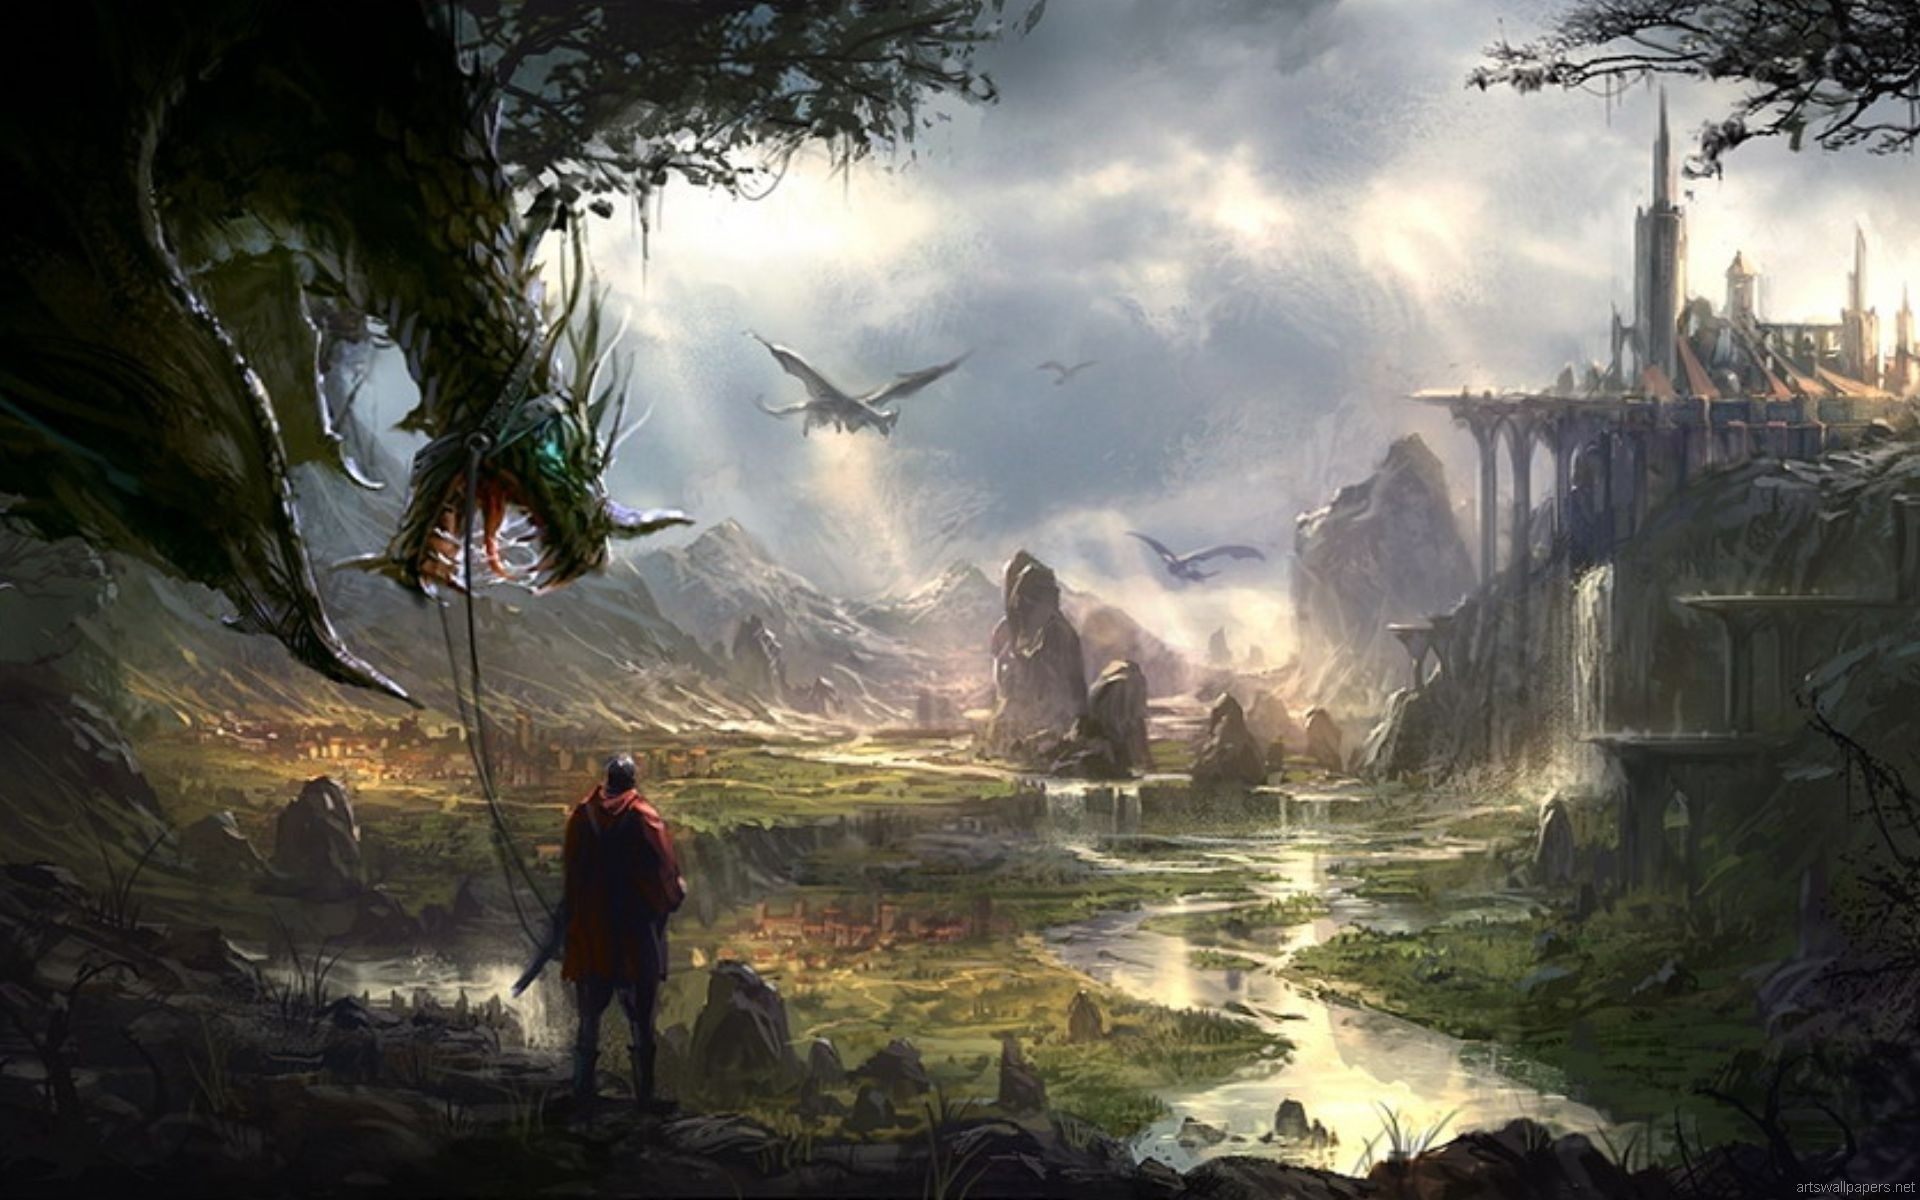 Hd Wallpapers Fantasy 79 Images: HD Fantasy Wallpapers 1080p (73+ Images